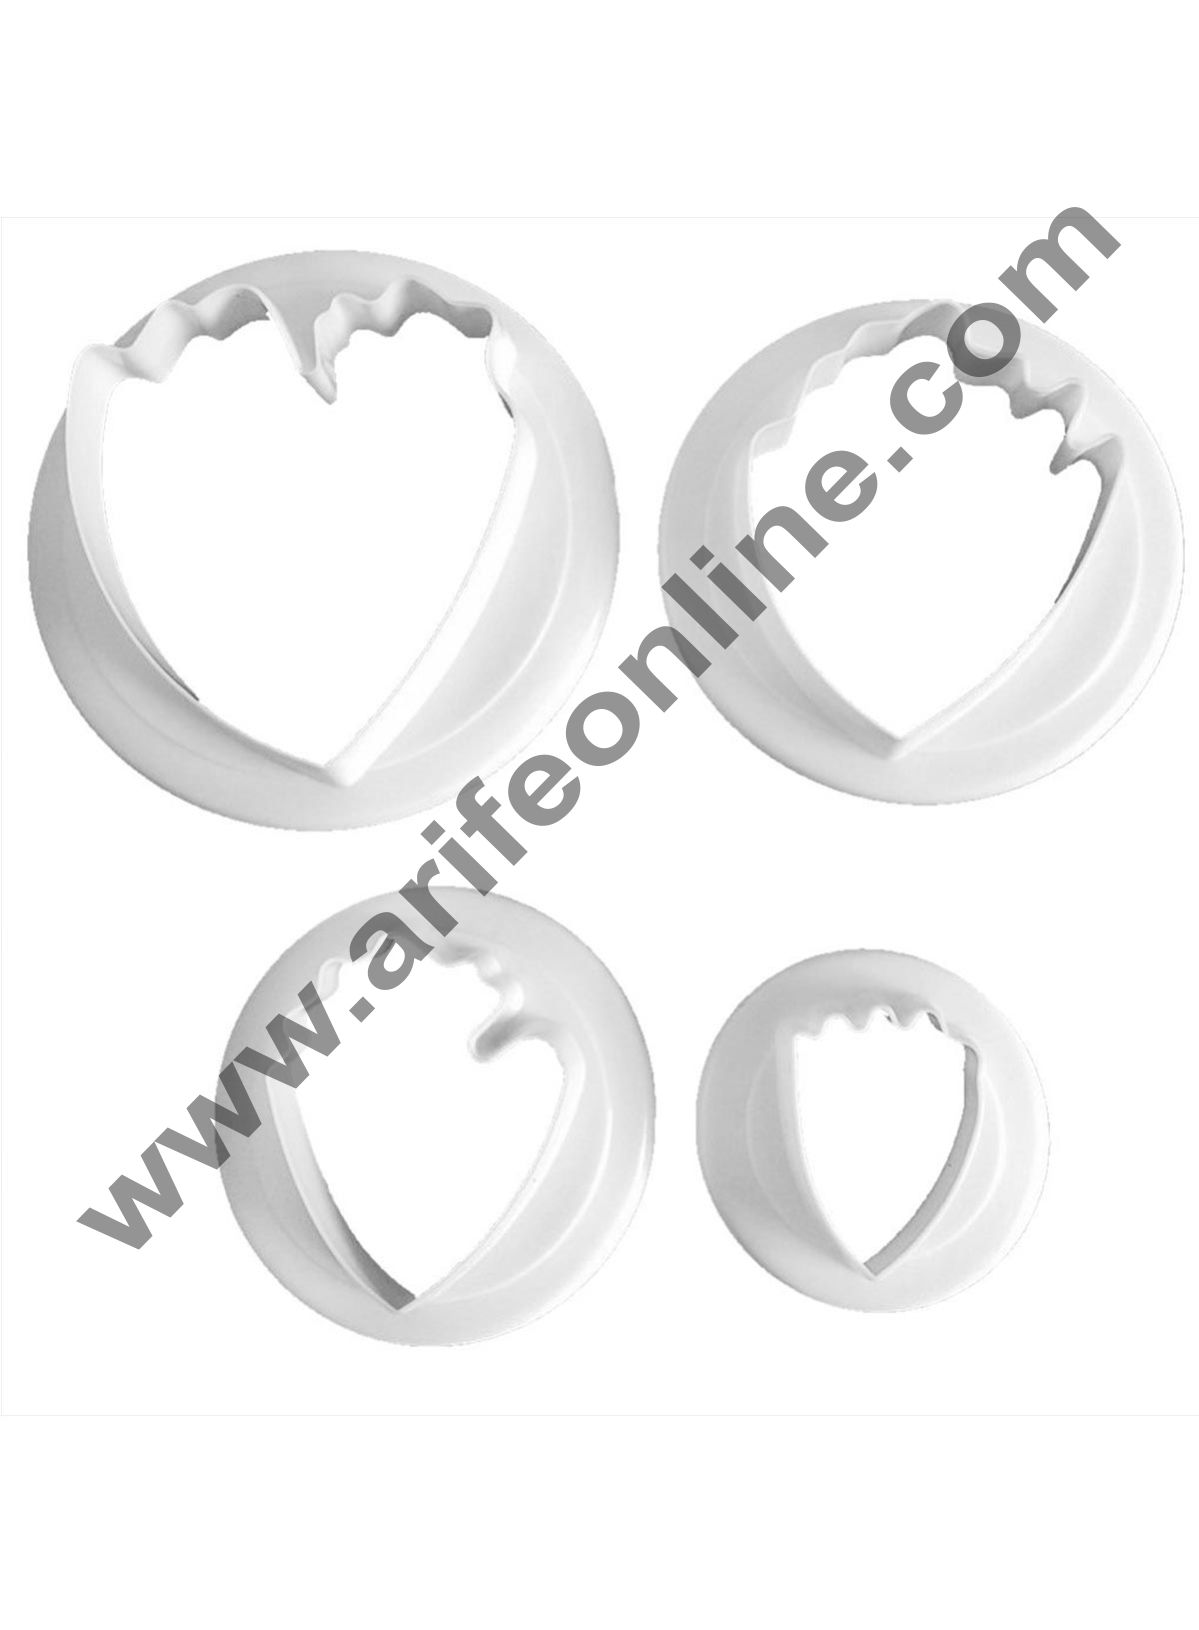 Cake Decor 4 Piece Mini Peony Cookie Cutter Paste Plunger Cake Decorating Pastry Topper White